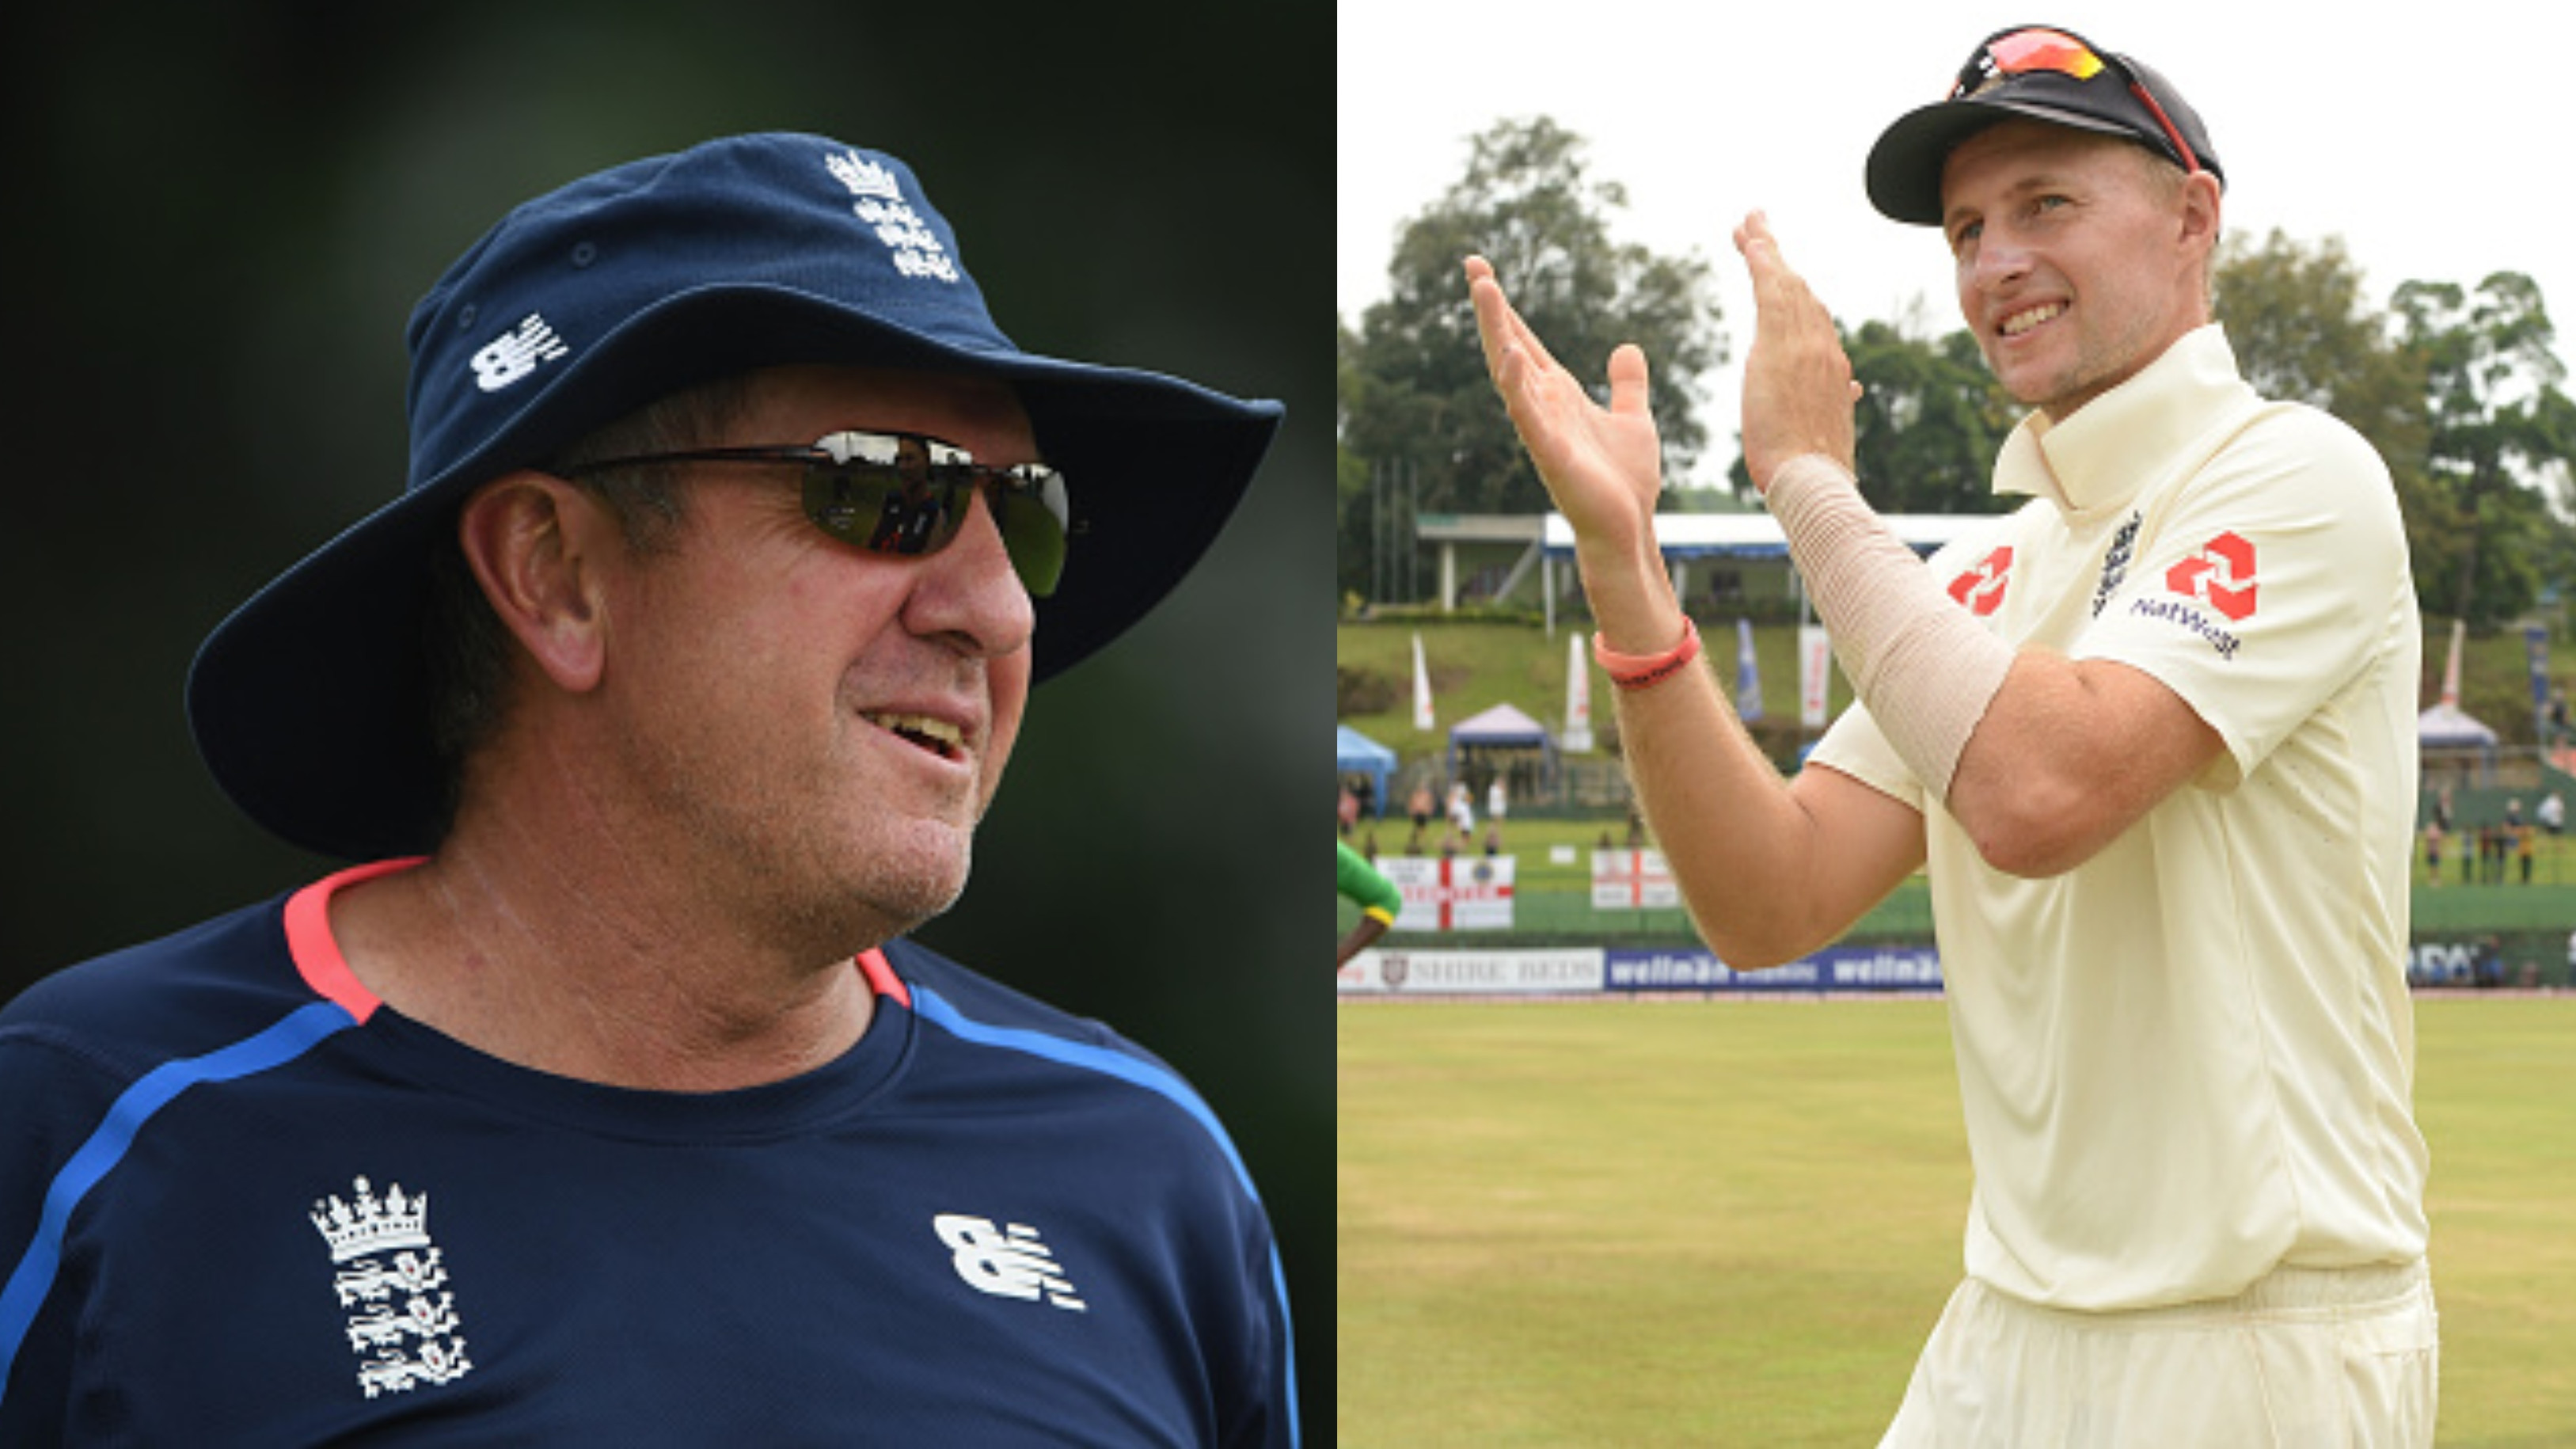 SL v ENG 2018: Trevor Bayliss hails the captain Joe Root, says he will get better and better, after Test series win